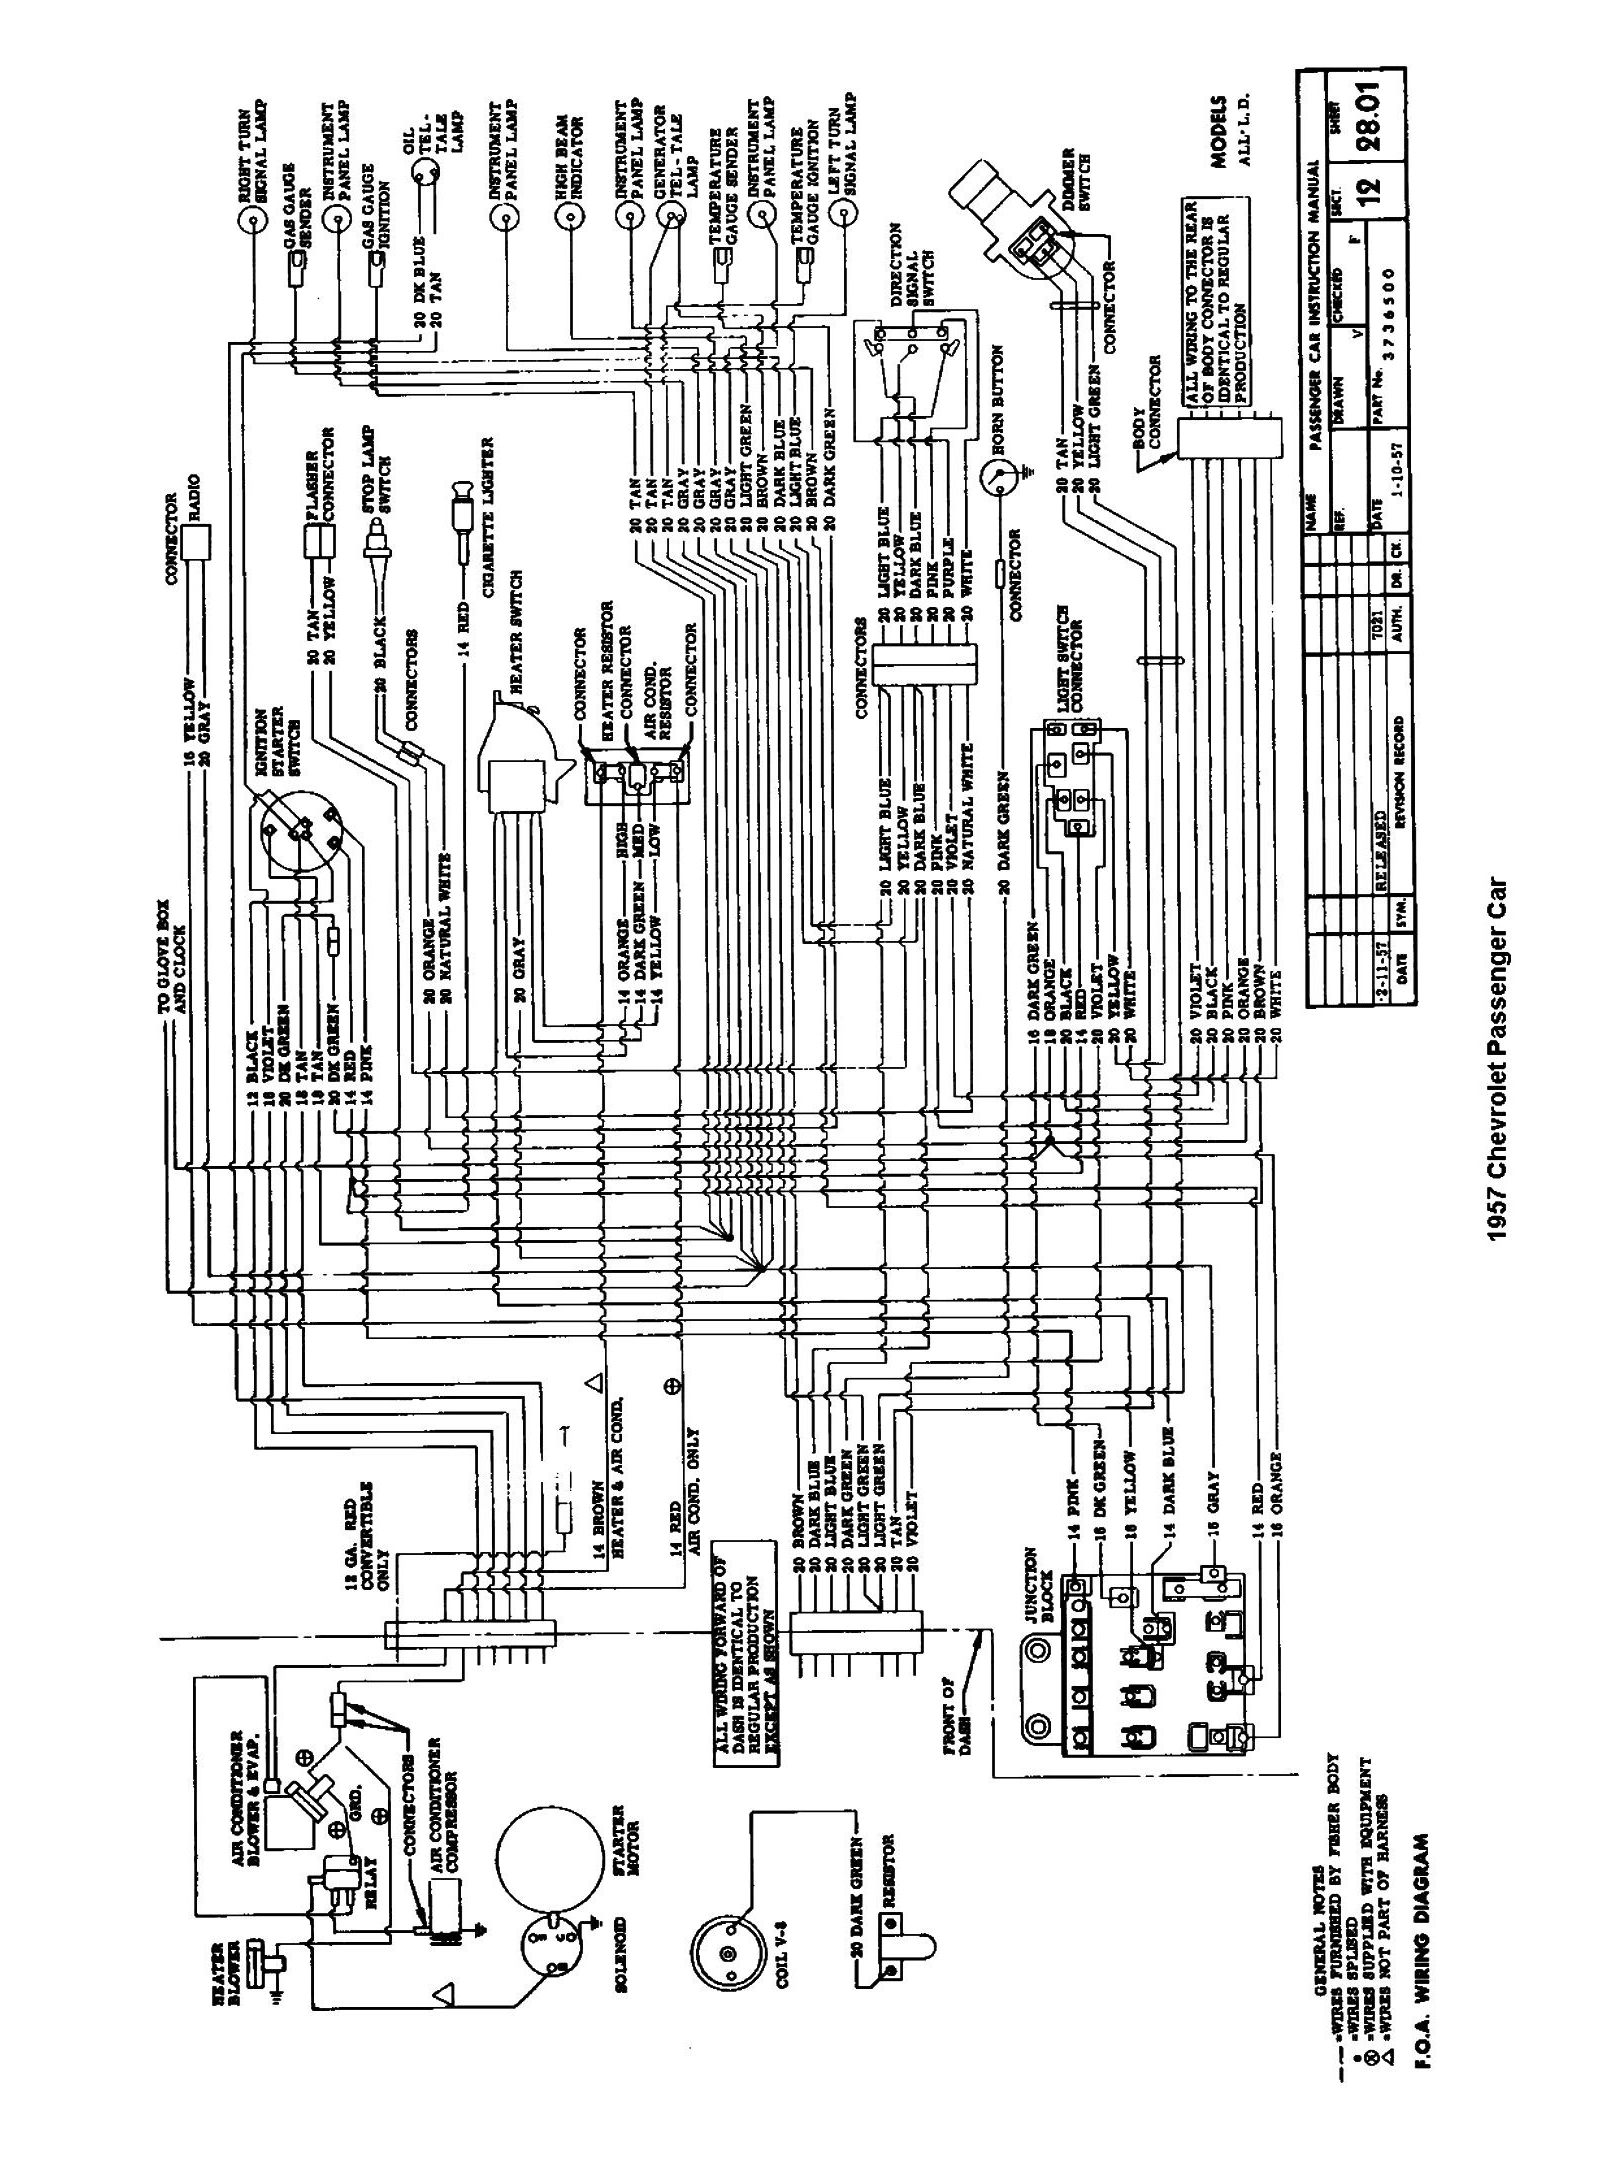 1954 Chevy Truck Wiring Diagram moreover 1955 Chevy Wiring Diagram in addition 1959 Chevy Impala Wiring Diagram furthermore 59 Gmc Truck Wiring Diagram Free Printable Wiring Diagrams in addition Mini Toggle Switch Wiring Diagram. on 59 chevy truck wiring diagram